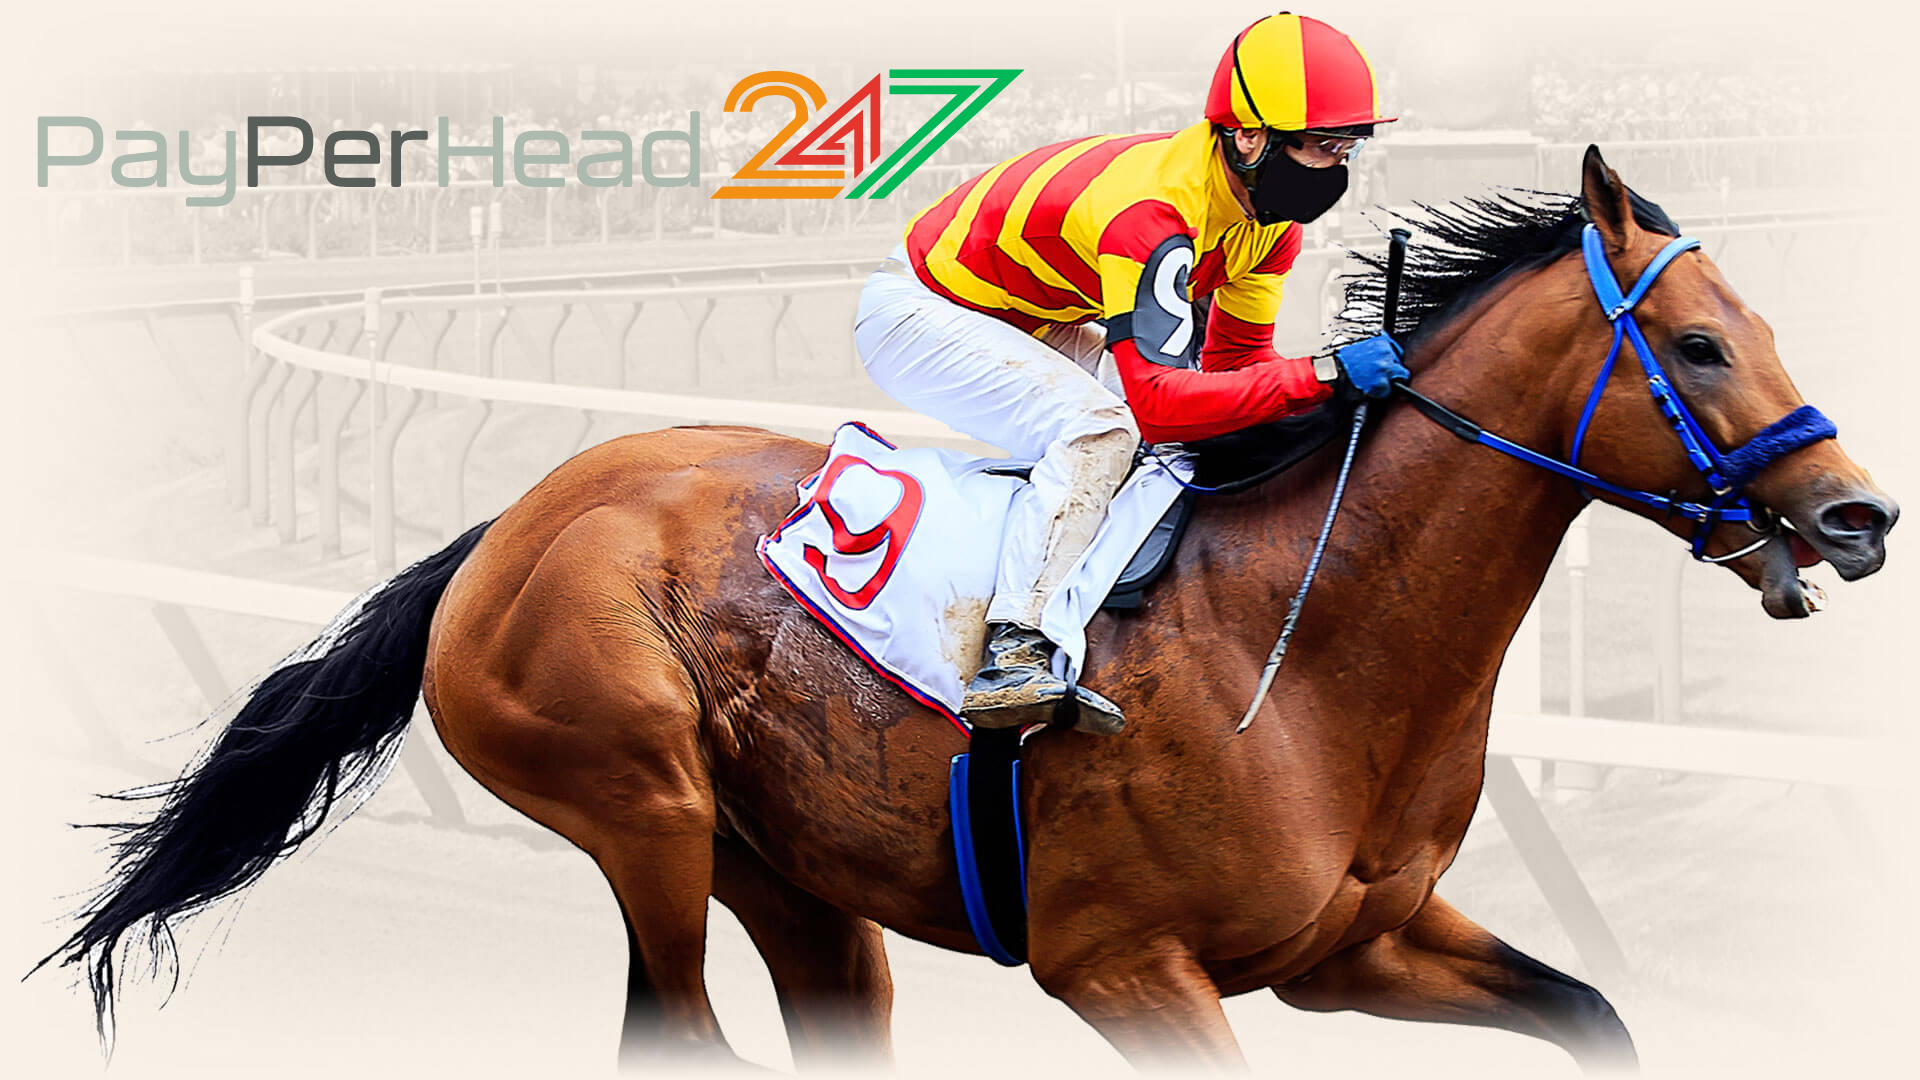 Thousands of Bookies Have Turned to PayPerHead247